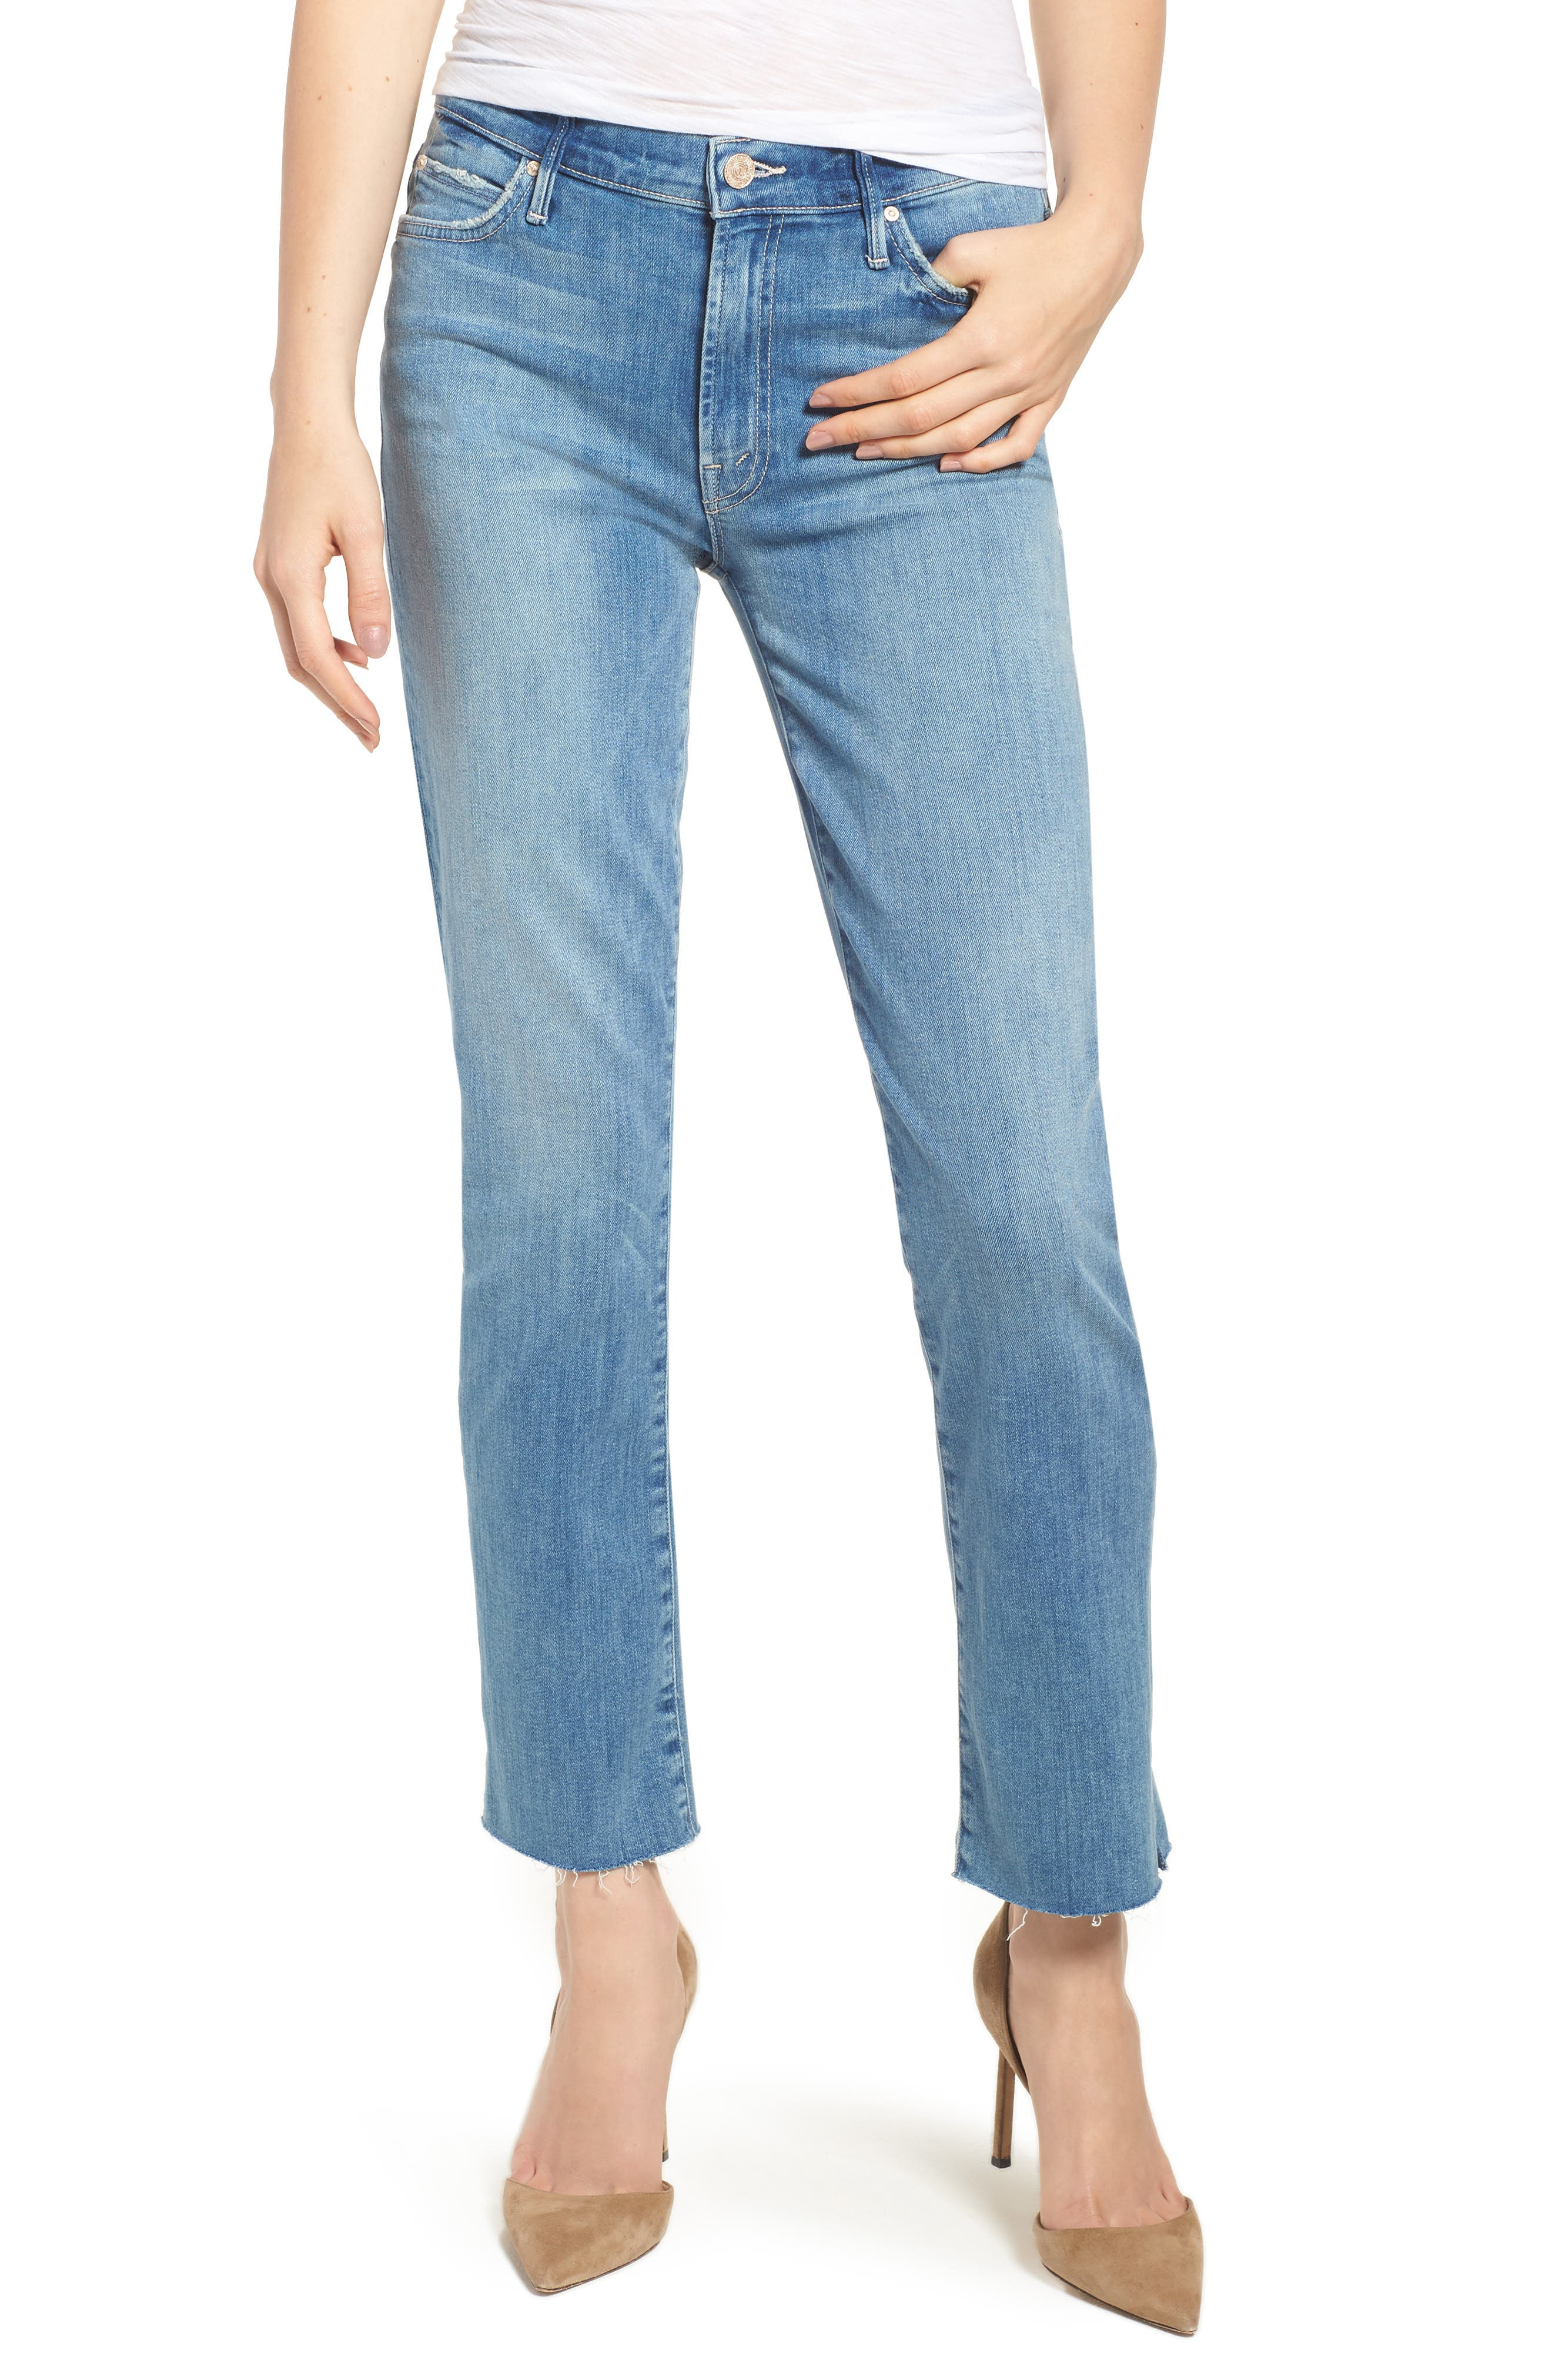 MOTHER The Rascal Ankle Snippet Straight Leg Jeans, Main, color, 400